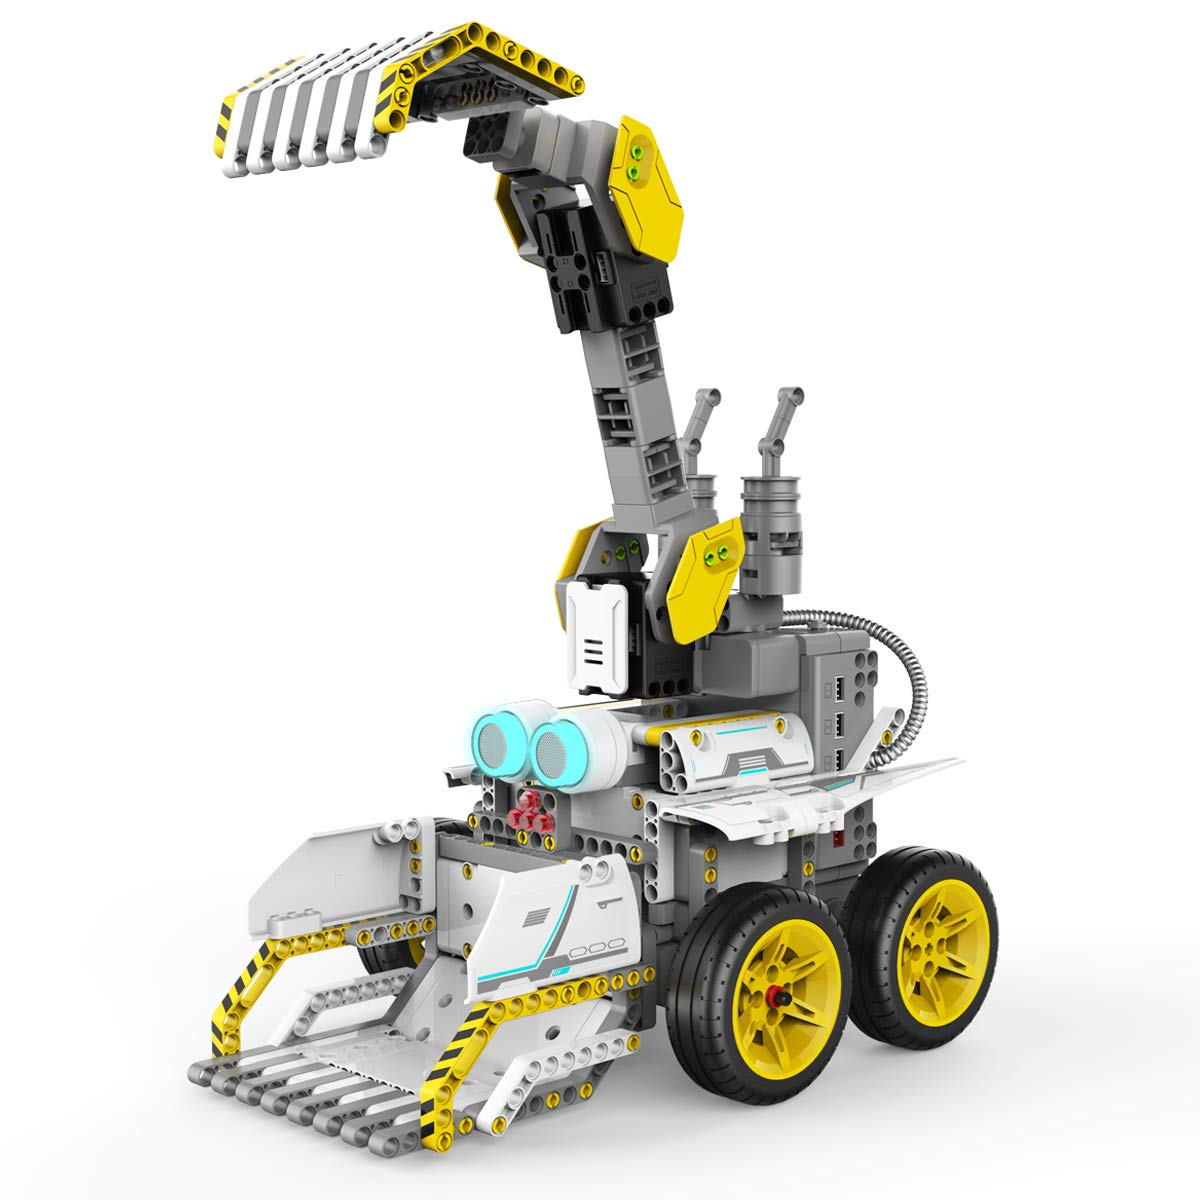 UBTECH JIMU Robot Builderbots Series: Overdrive Kit / App-Enabled Building and Coding STEM Learning Kit (410 Parts and Connectors) by UBTECH (Image #2)